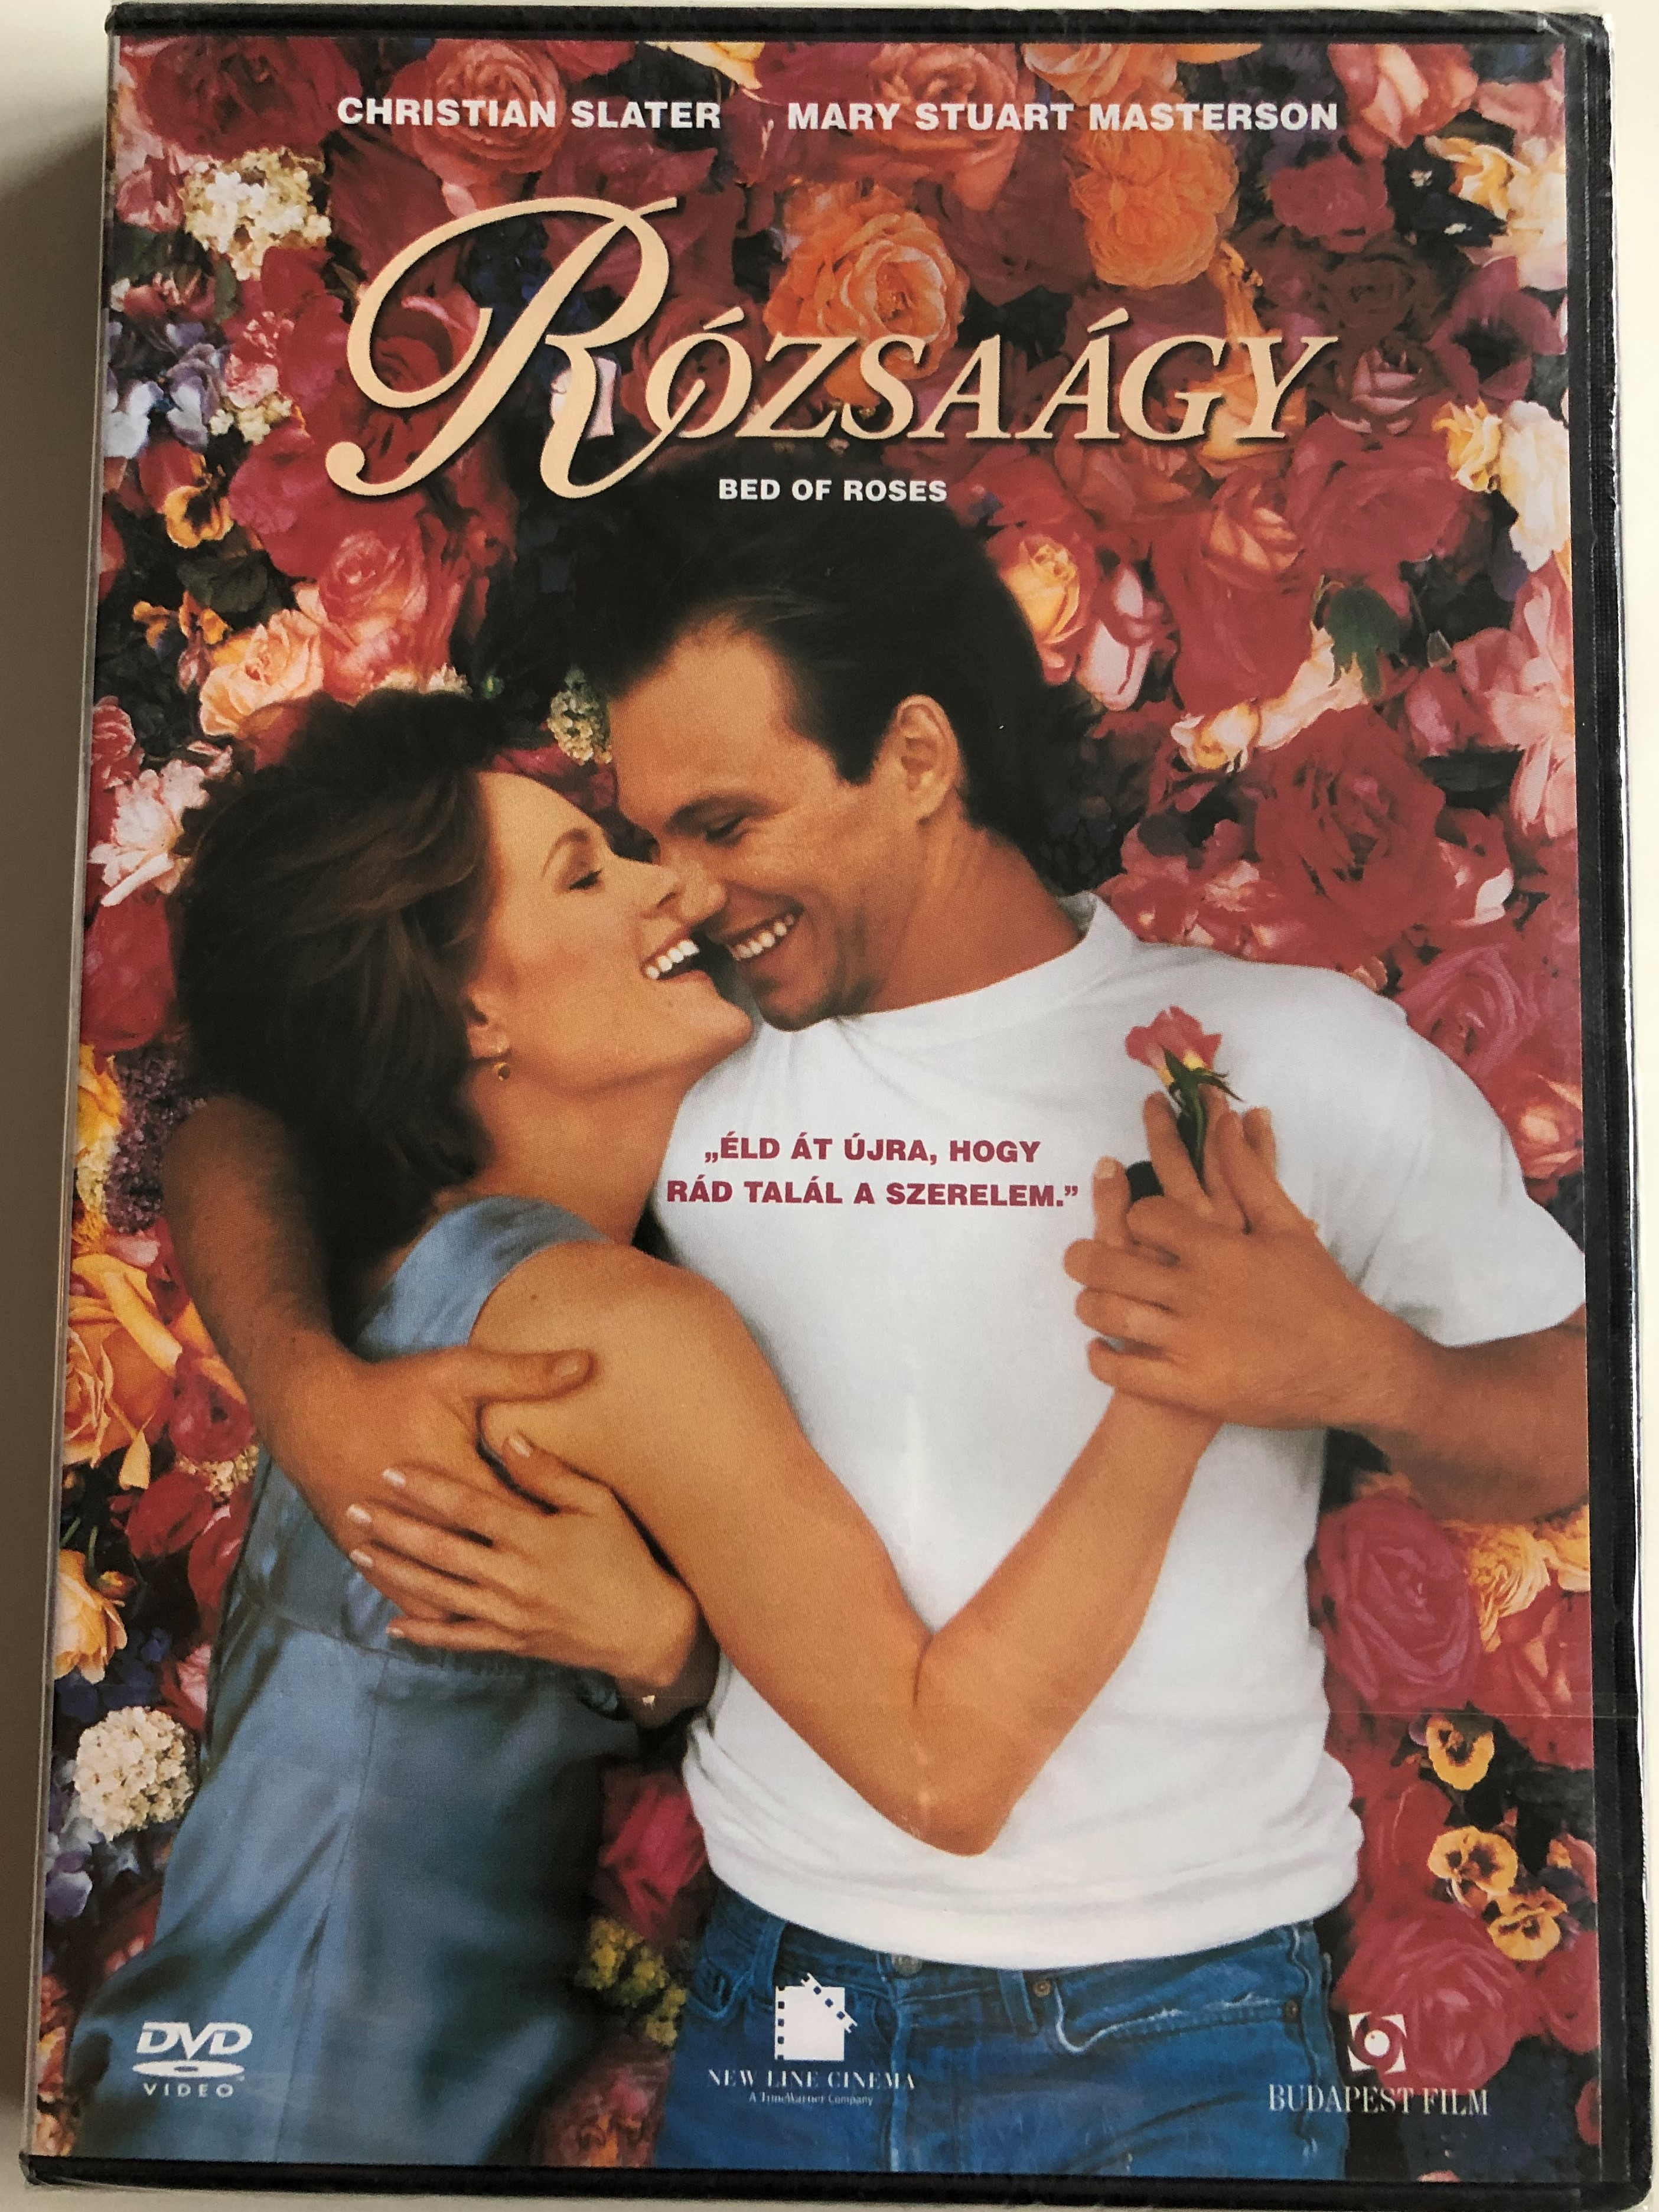 bed-of-roses-dvd-1996-r-zsa-gy-1.jpg